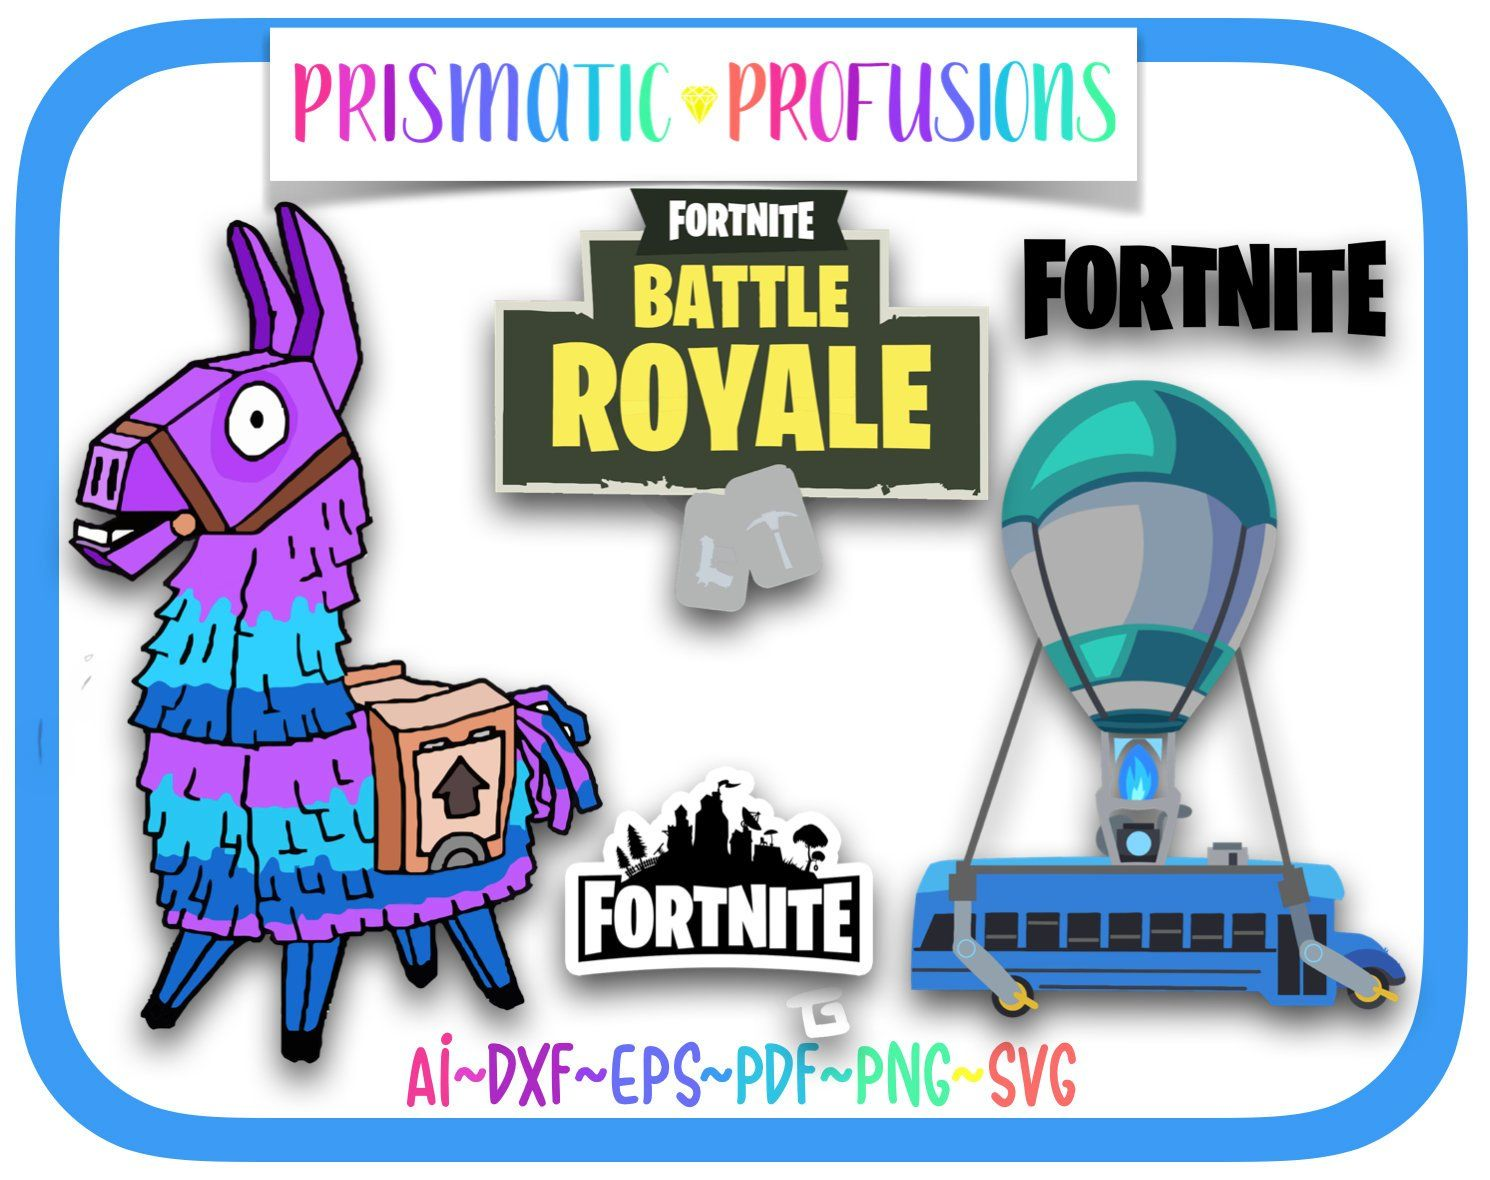 fortnite fortnite svg fortnite clipart fortnite birthday fortnite shirt fornite game fornite party battle royale battle bus - fortnite anniversary battle bus music